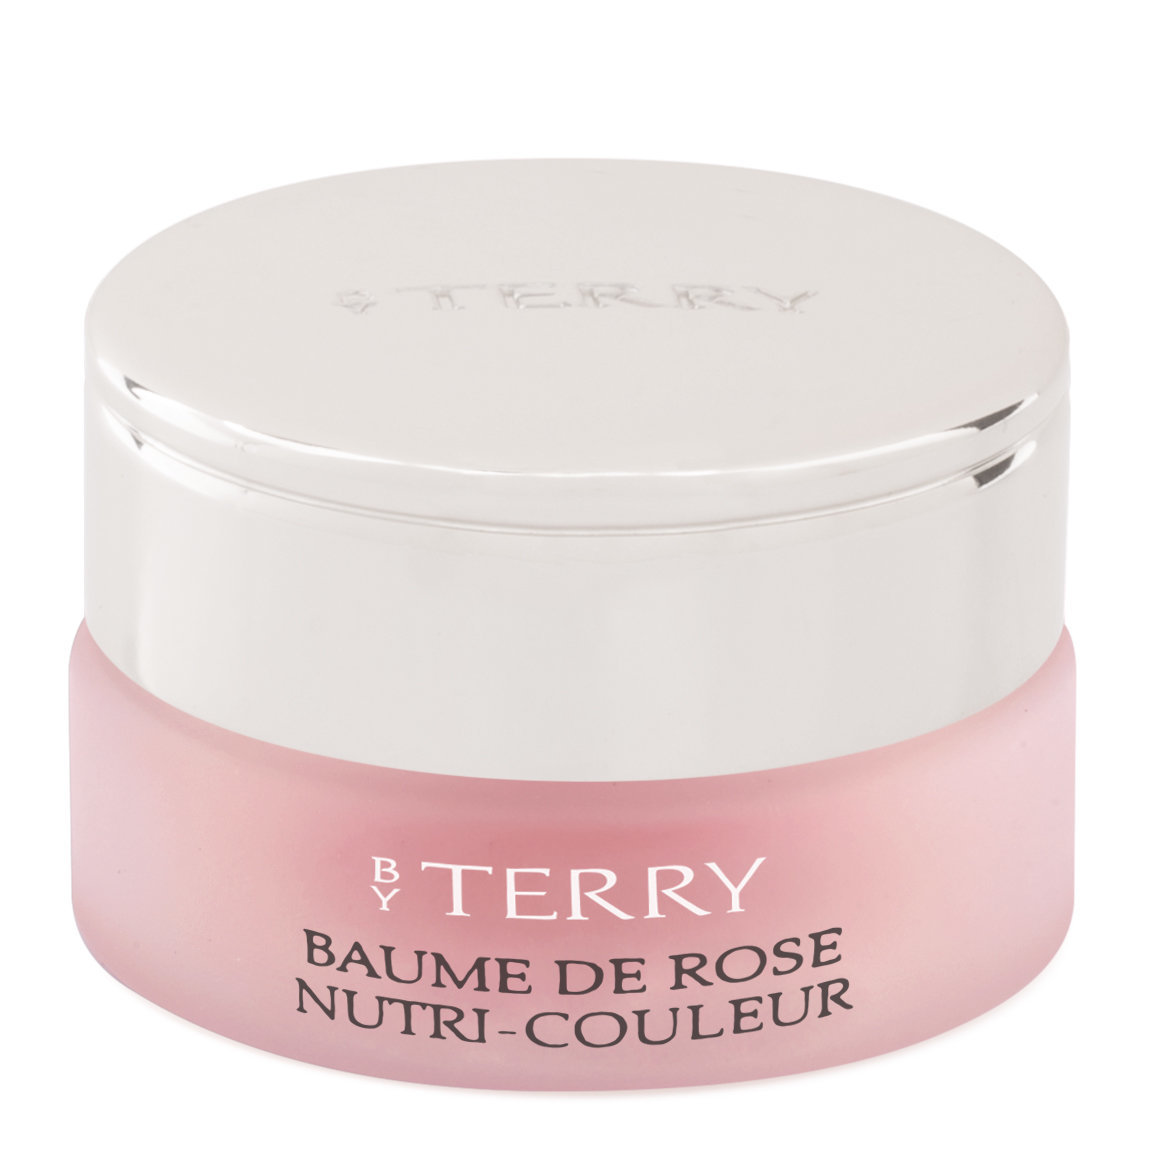 BY TERRY Baume de Rose Nutri-Couleur 1 Rosy Babe alternative view 1.